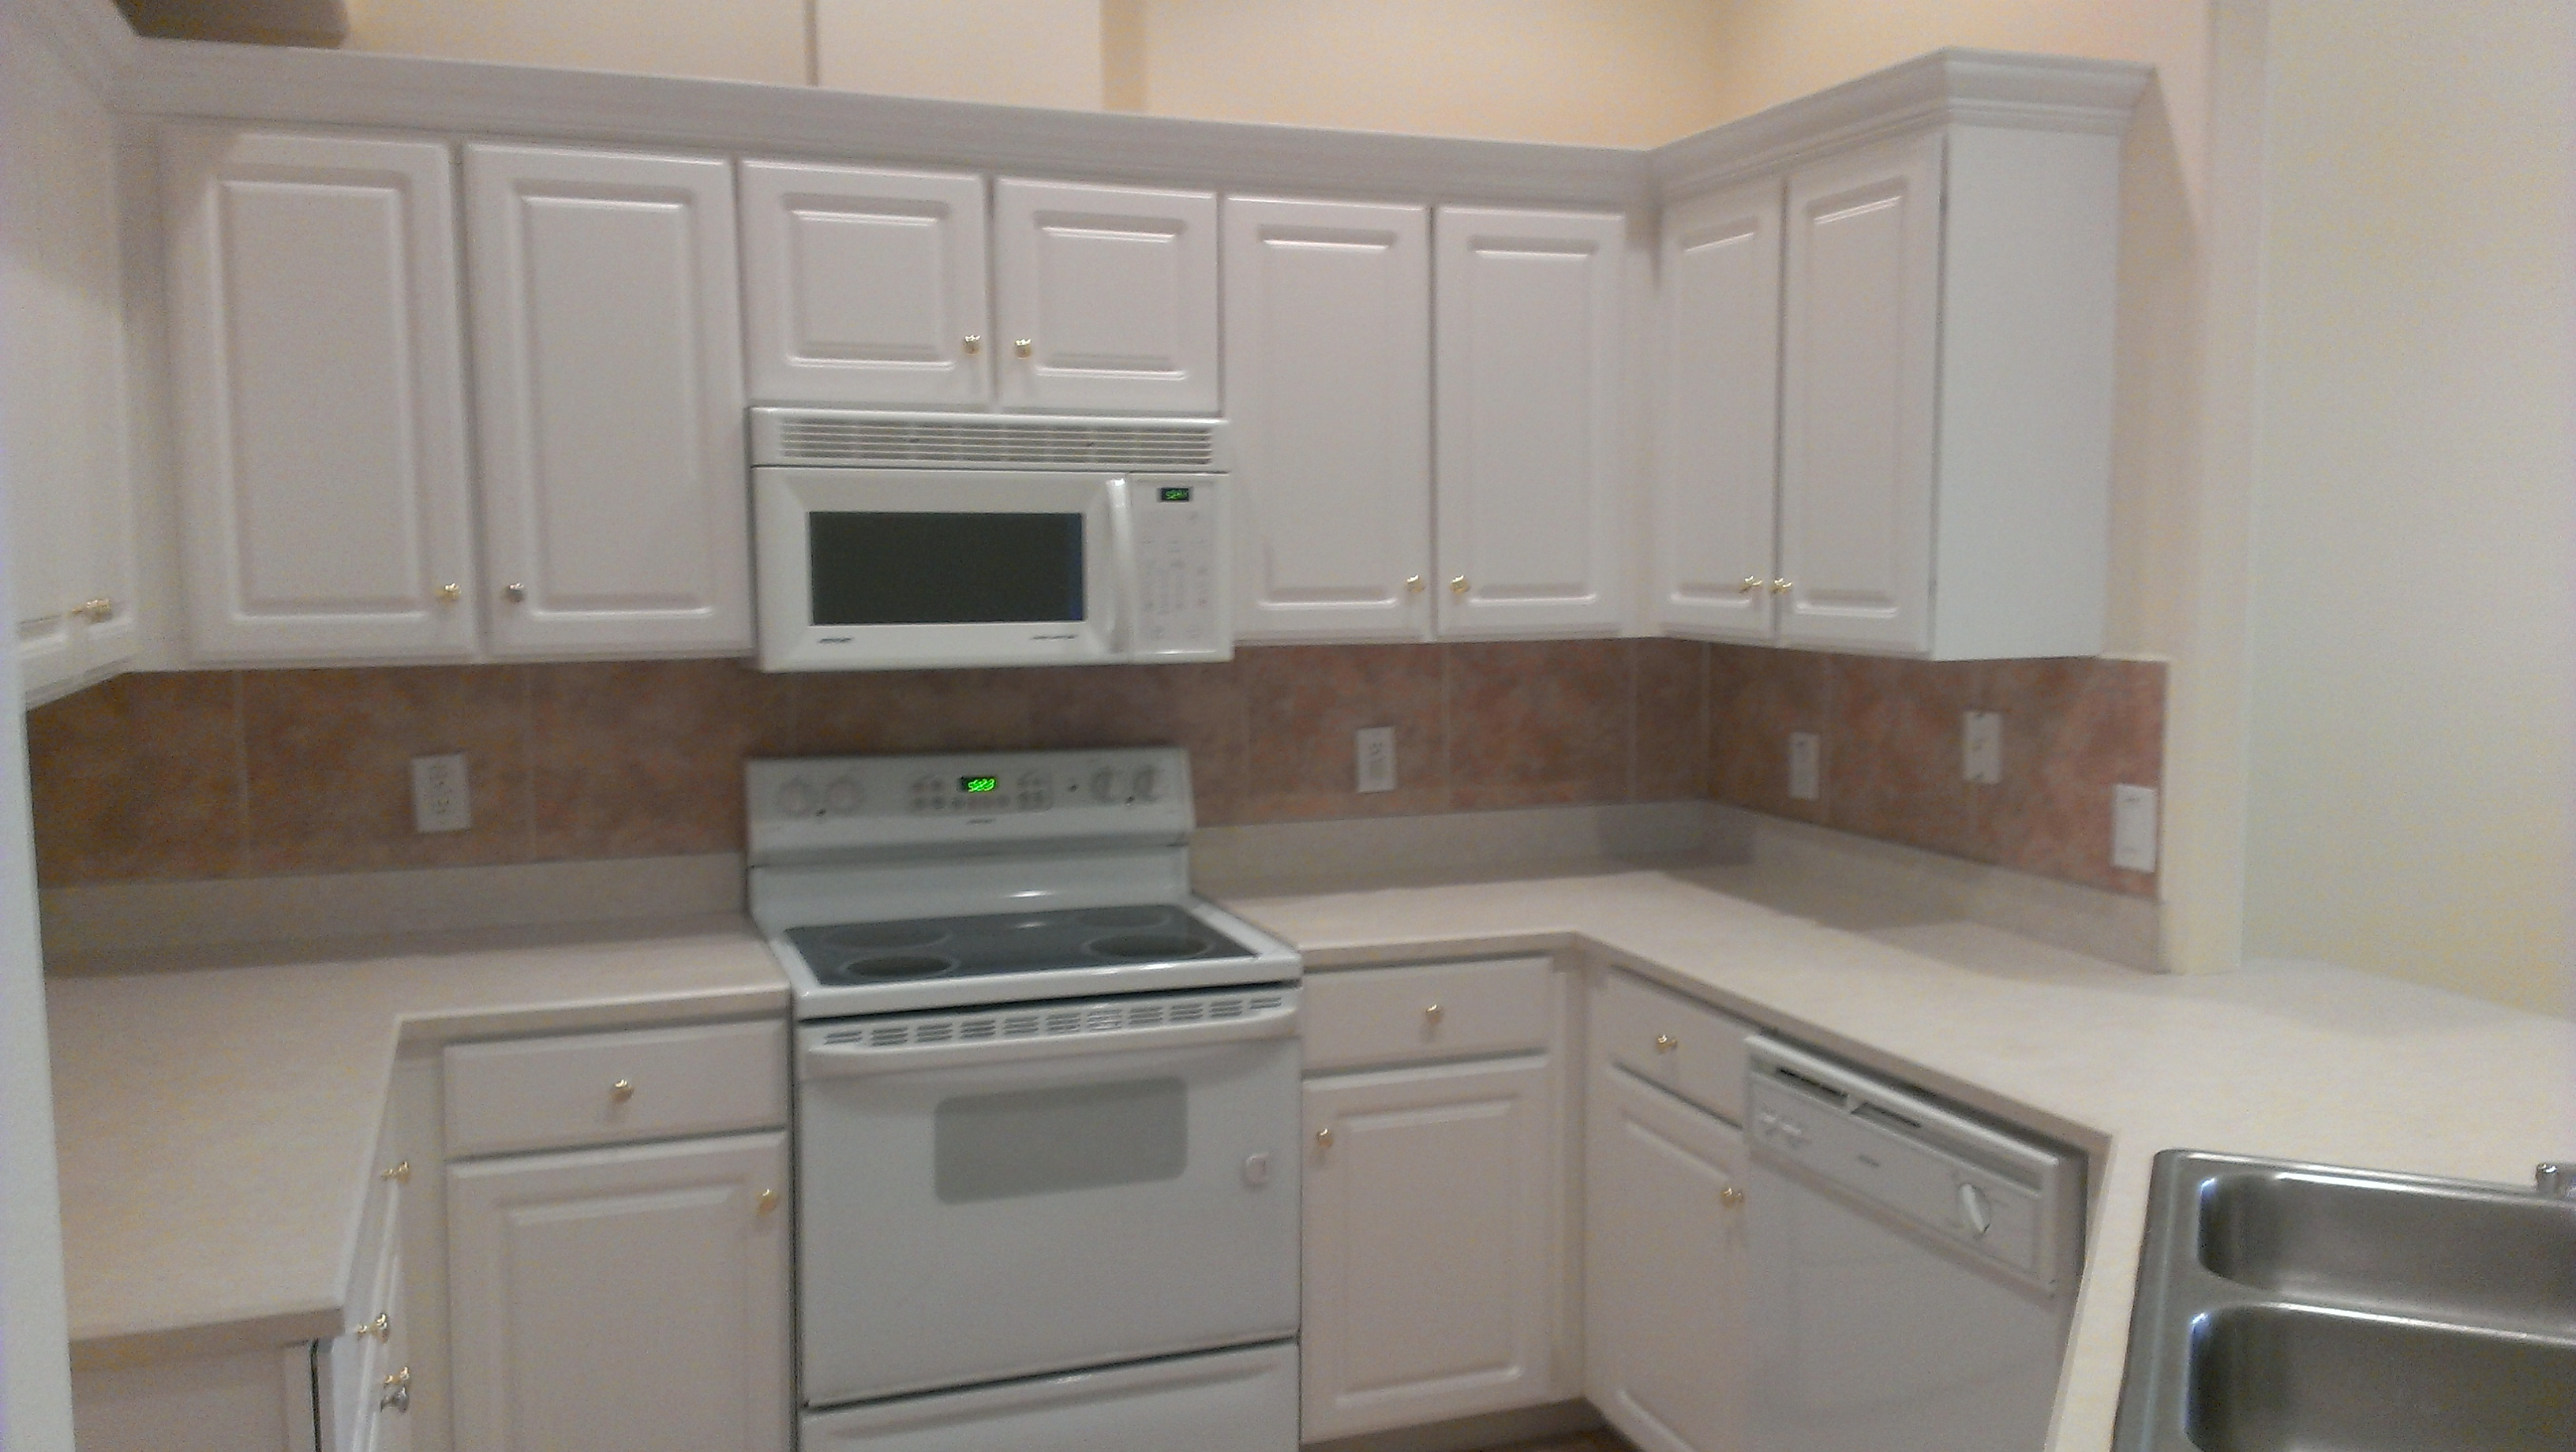 Cabinet Refacing Contractors In Daytona Beach And North